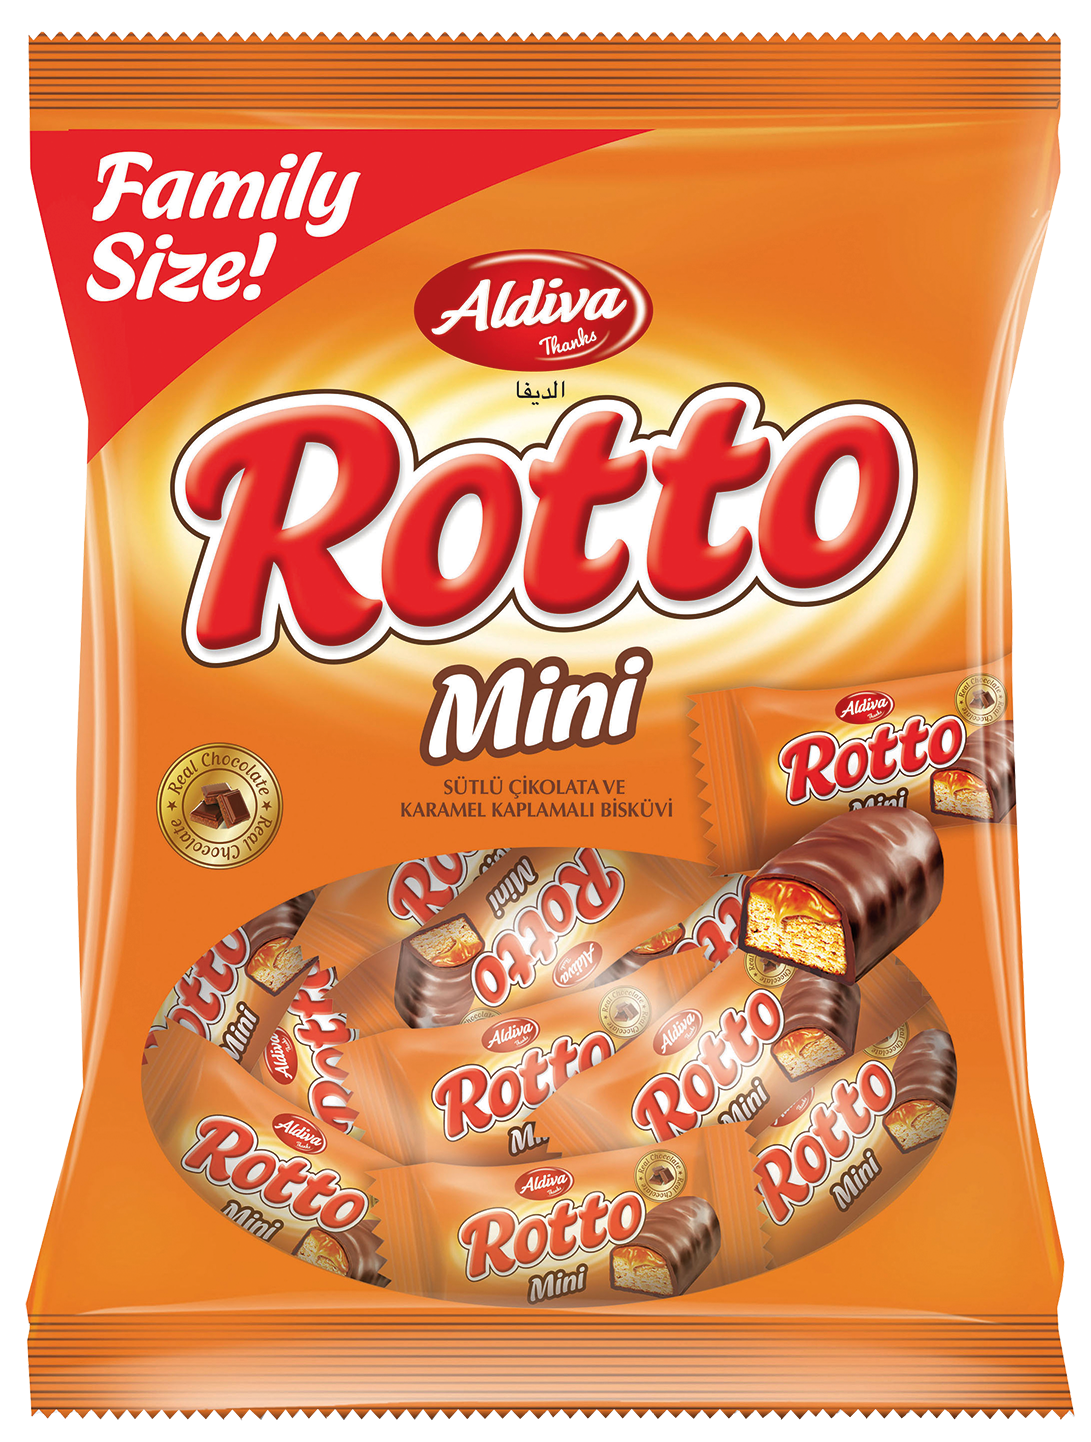 Rotto Mini Milk Chocolate & Caramel Coated Bar Biscuits 234g